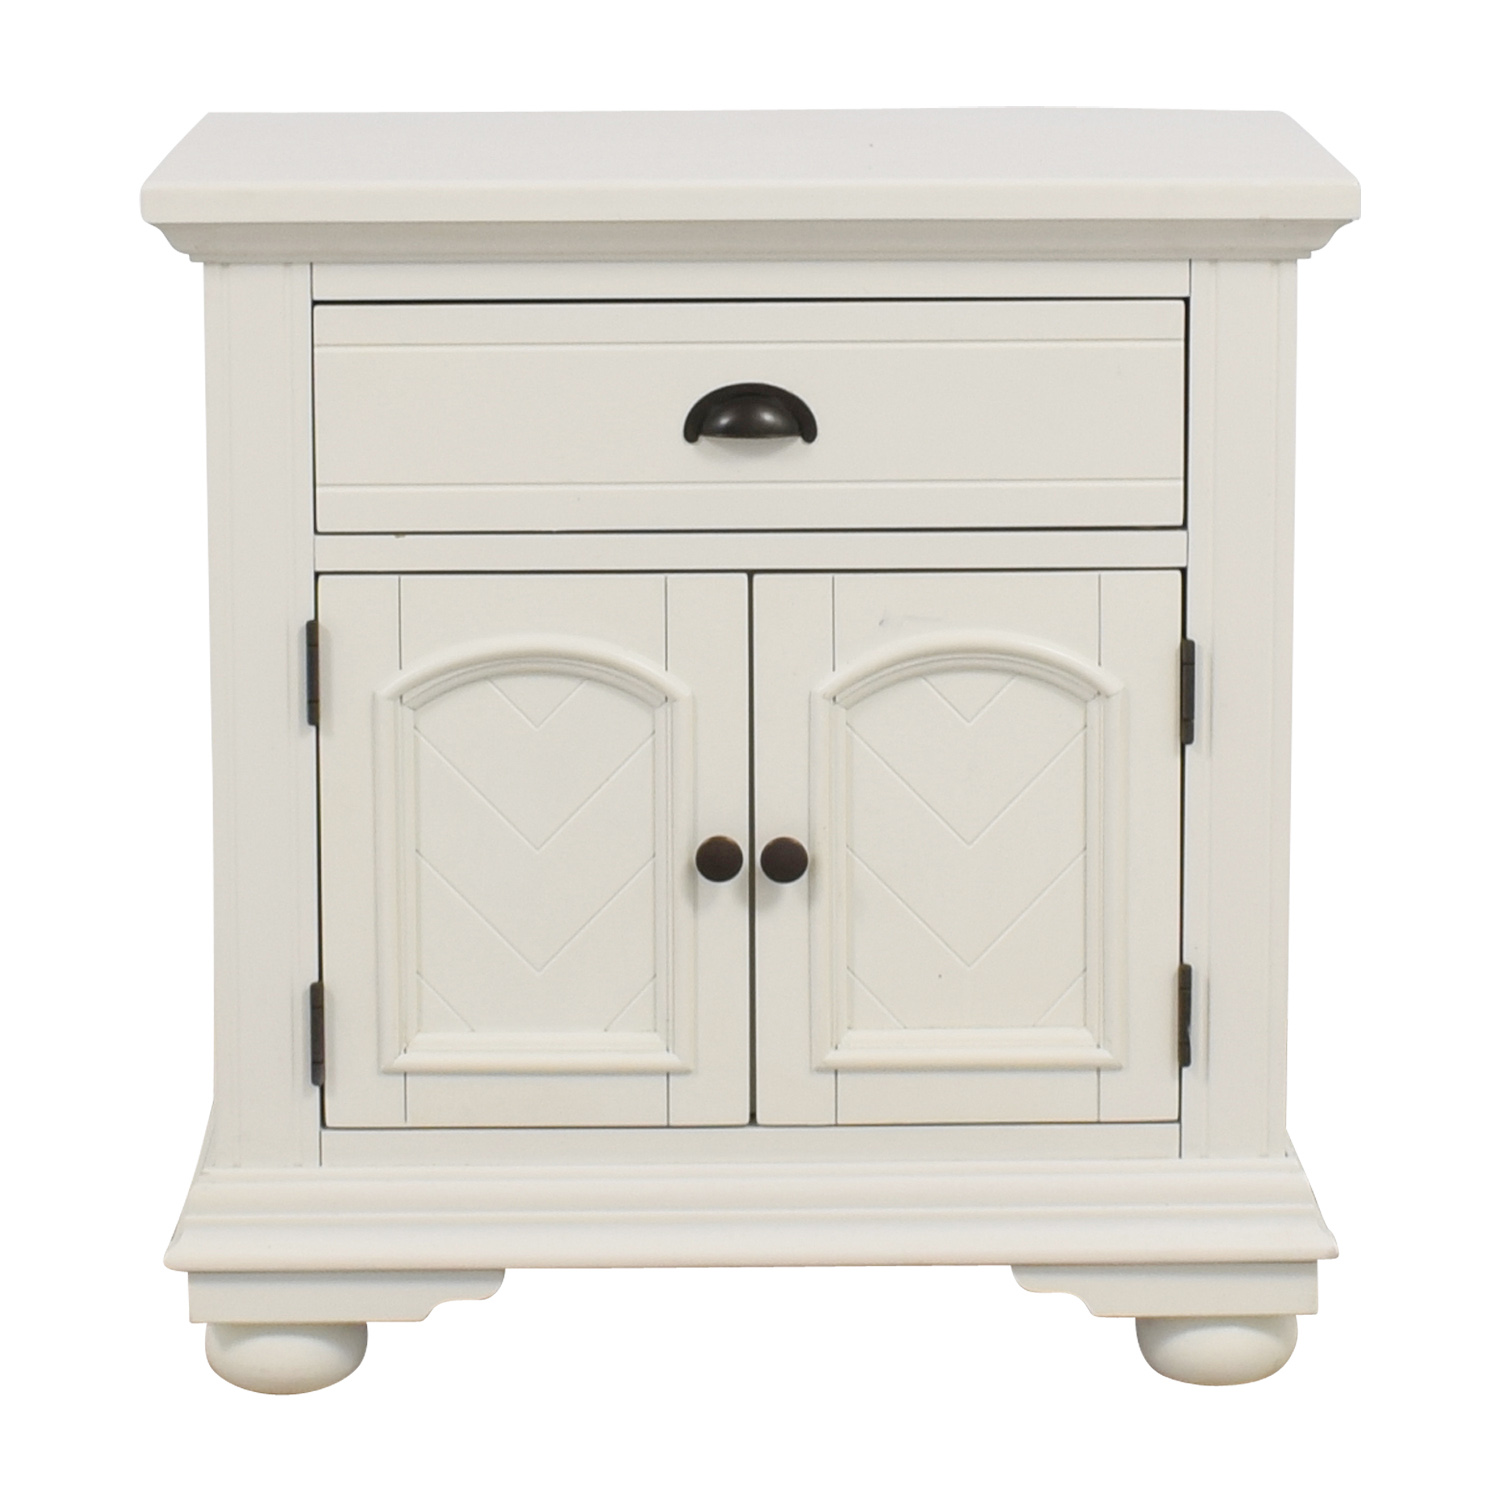 Bobs Furniture Bobs Furniture White Single-Drawer Nightstand white